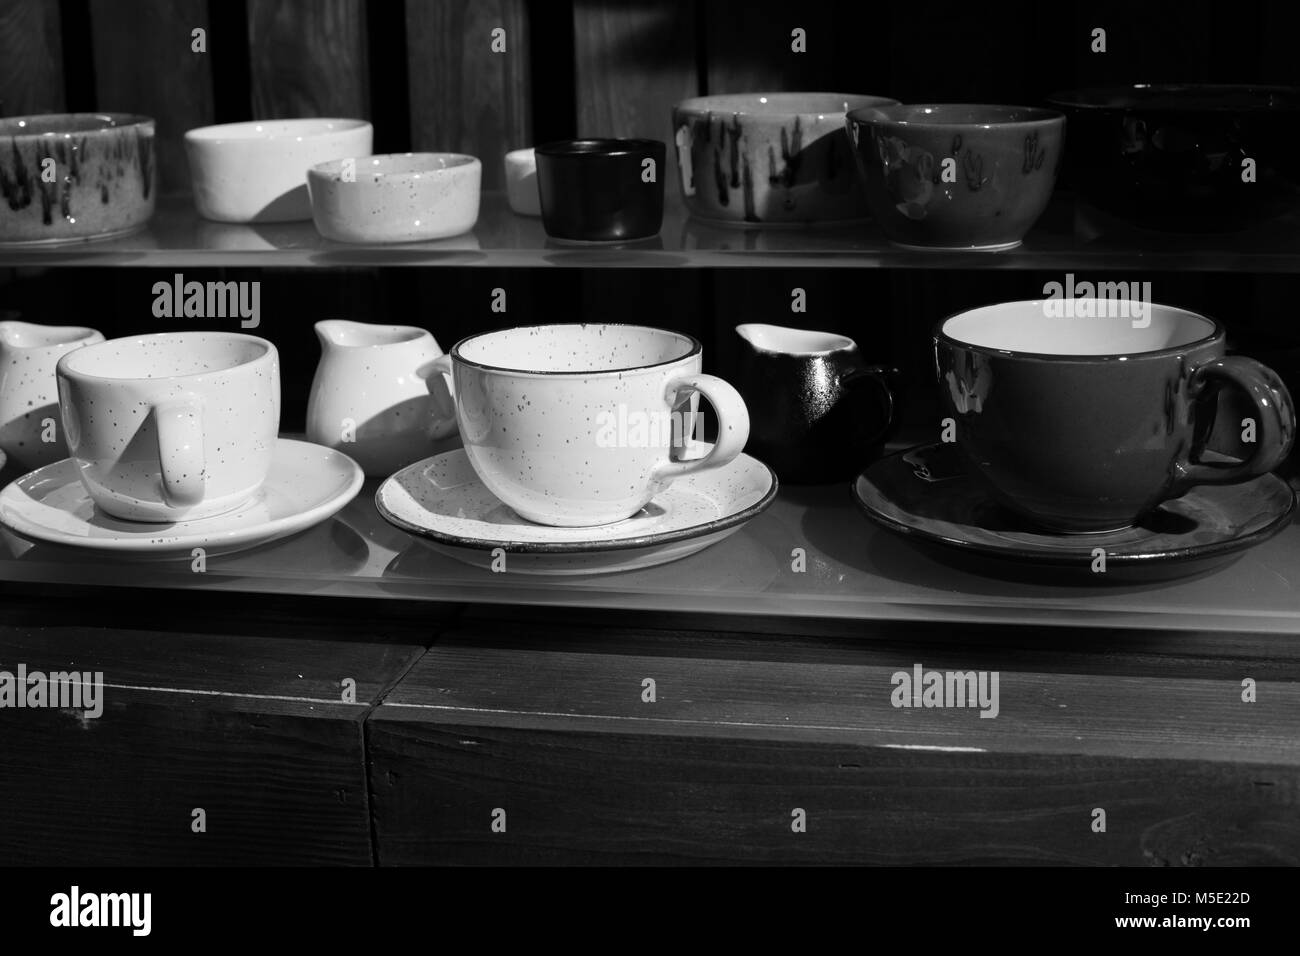 wood, espresso, morning, coffee, white, cup, a cup, tree, box, kitchen, black and white, retro, kitchen tools - Stock Image